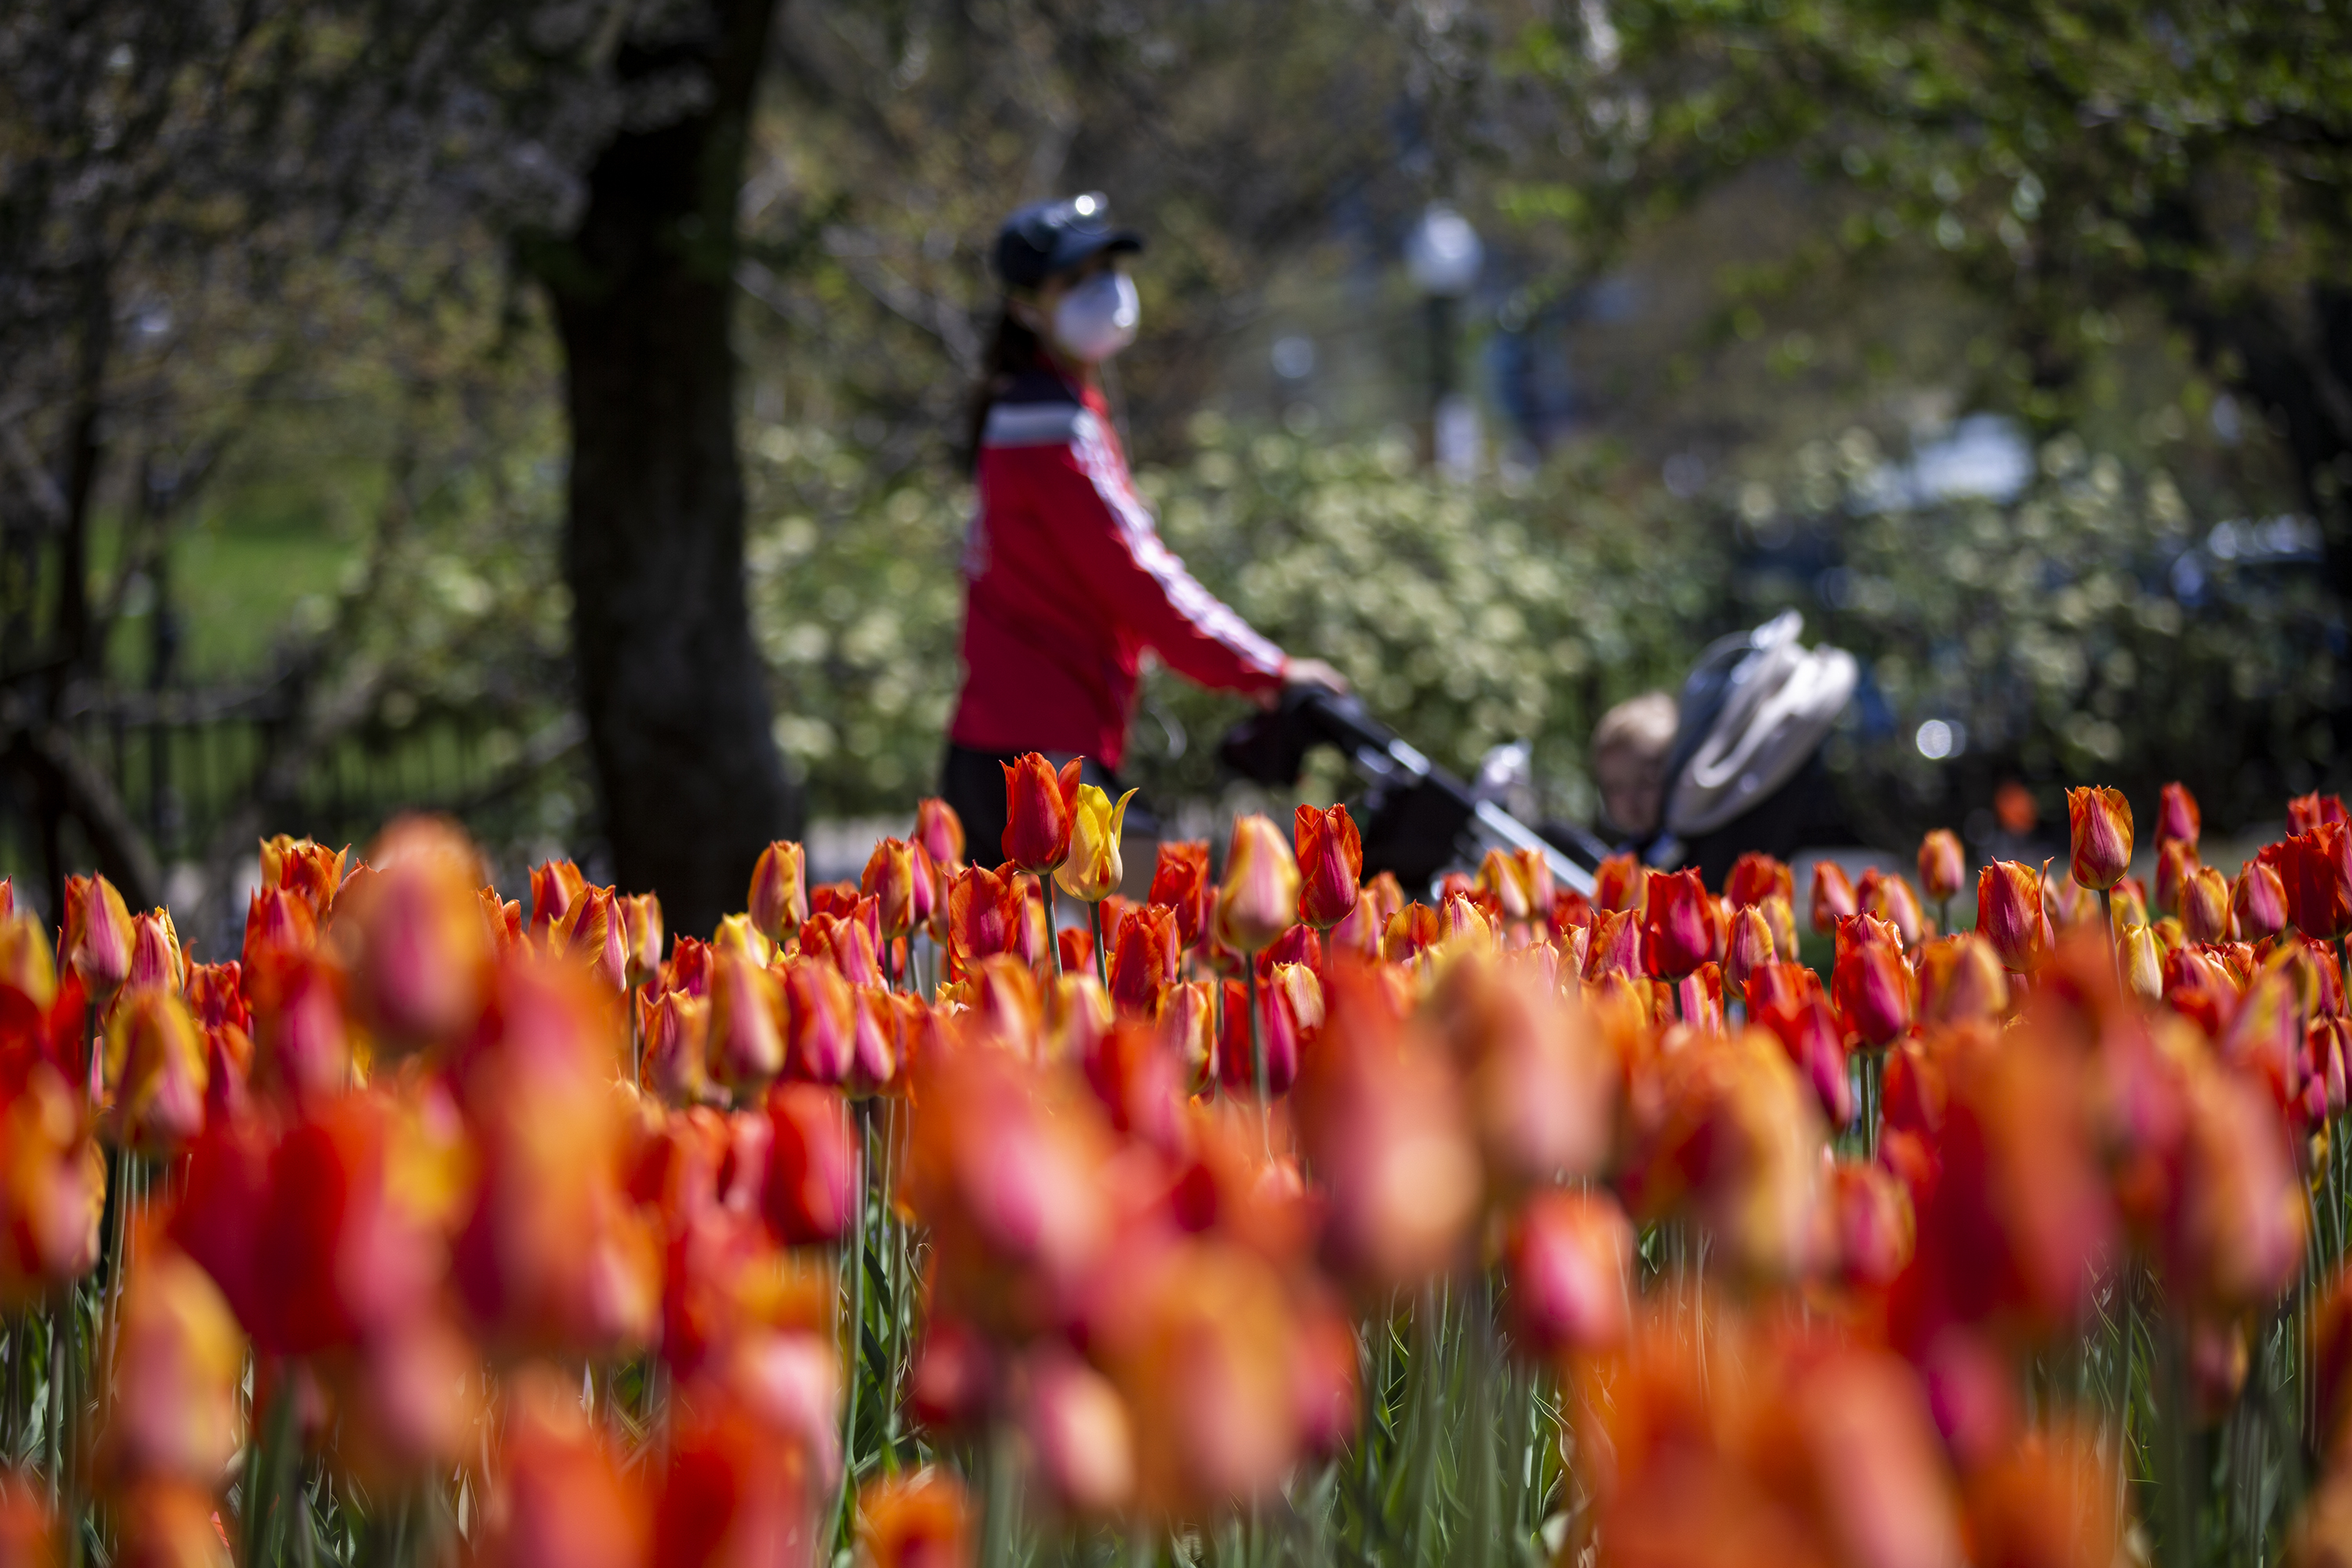 A woman with a baby carriage walks past the tulips in bloom at the Boston Public Garden. (Jesse Costa/WBUR)